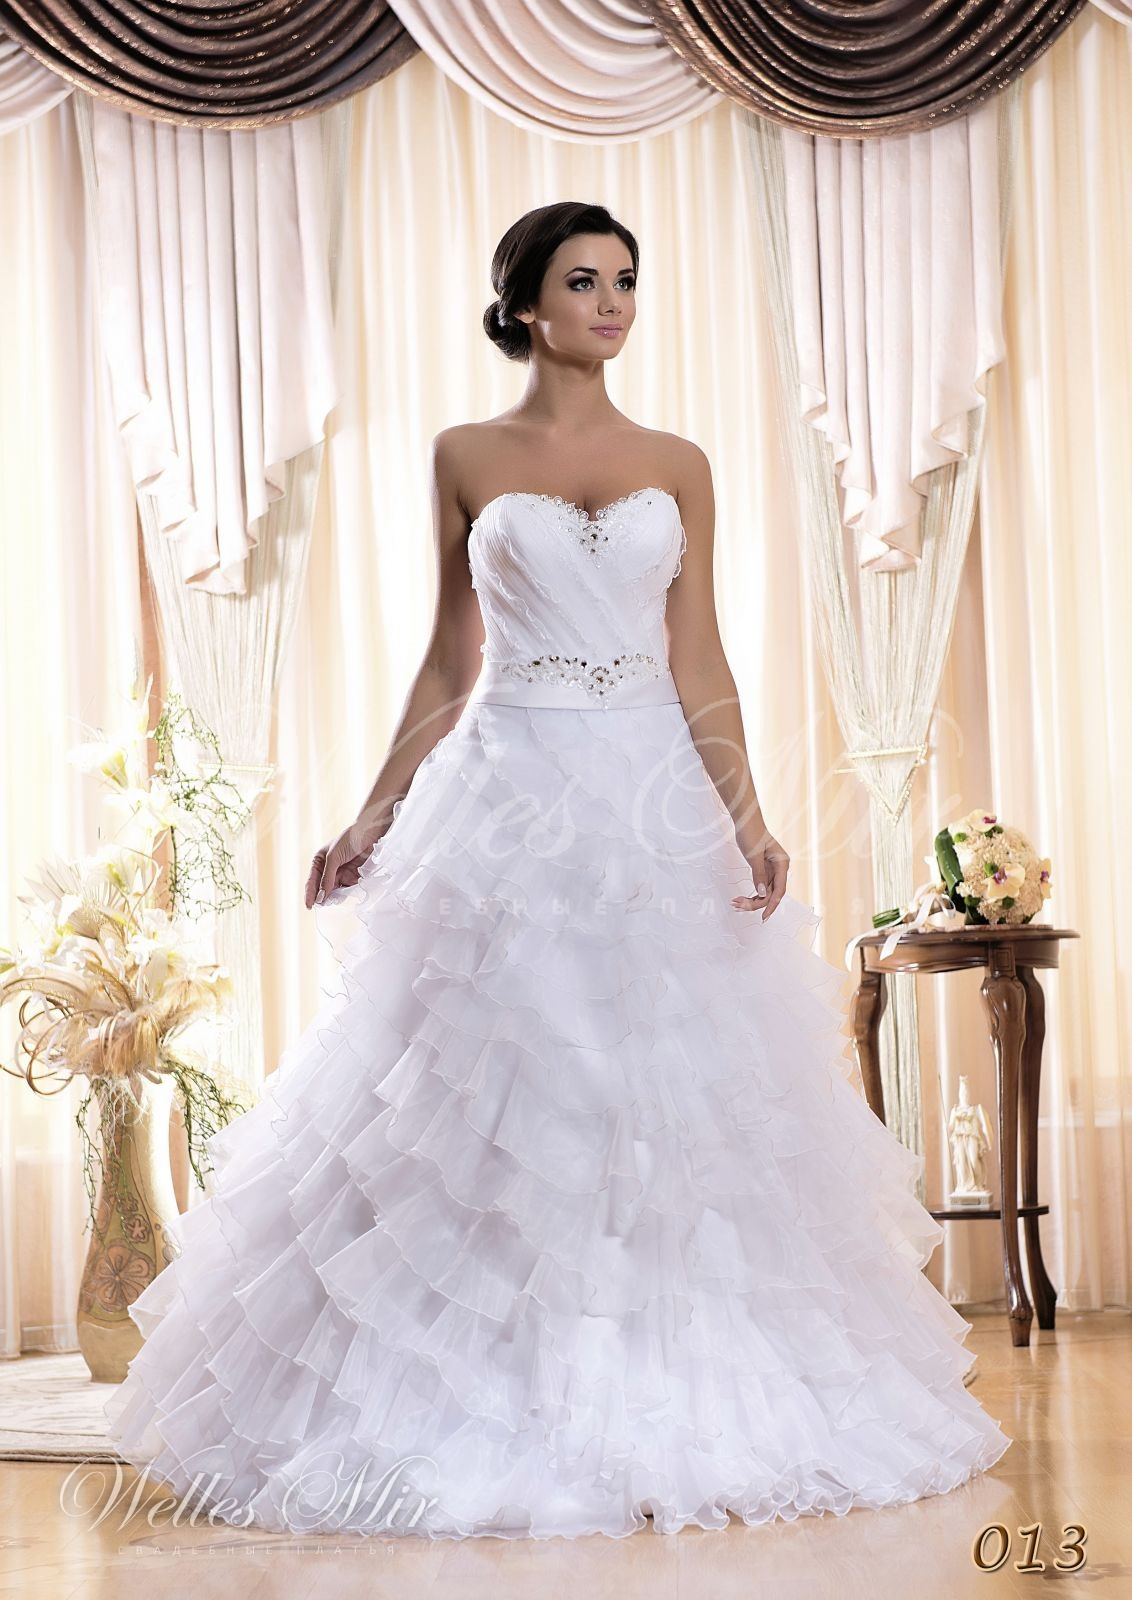 Wedding dresses 013